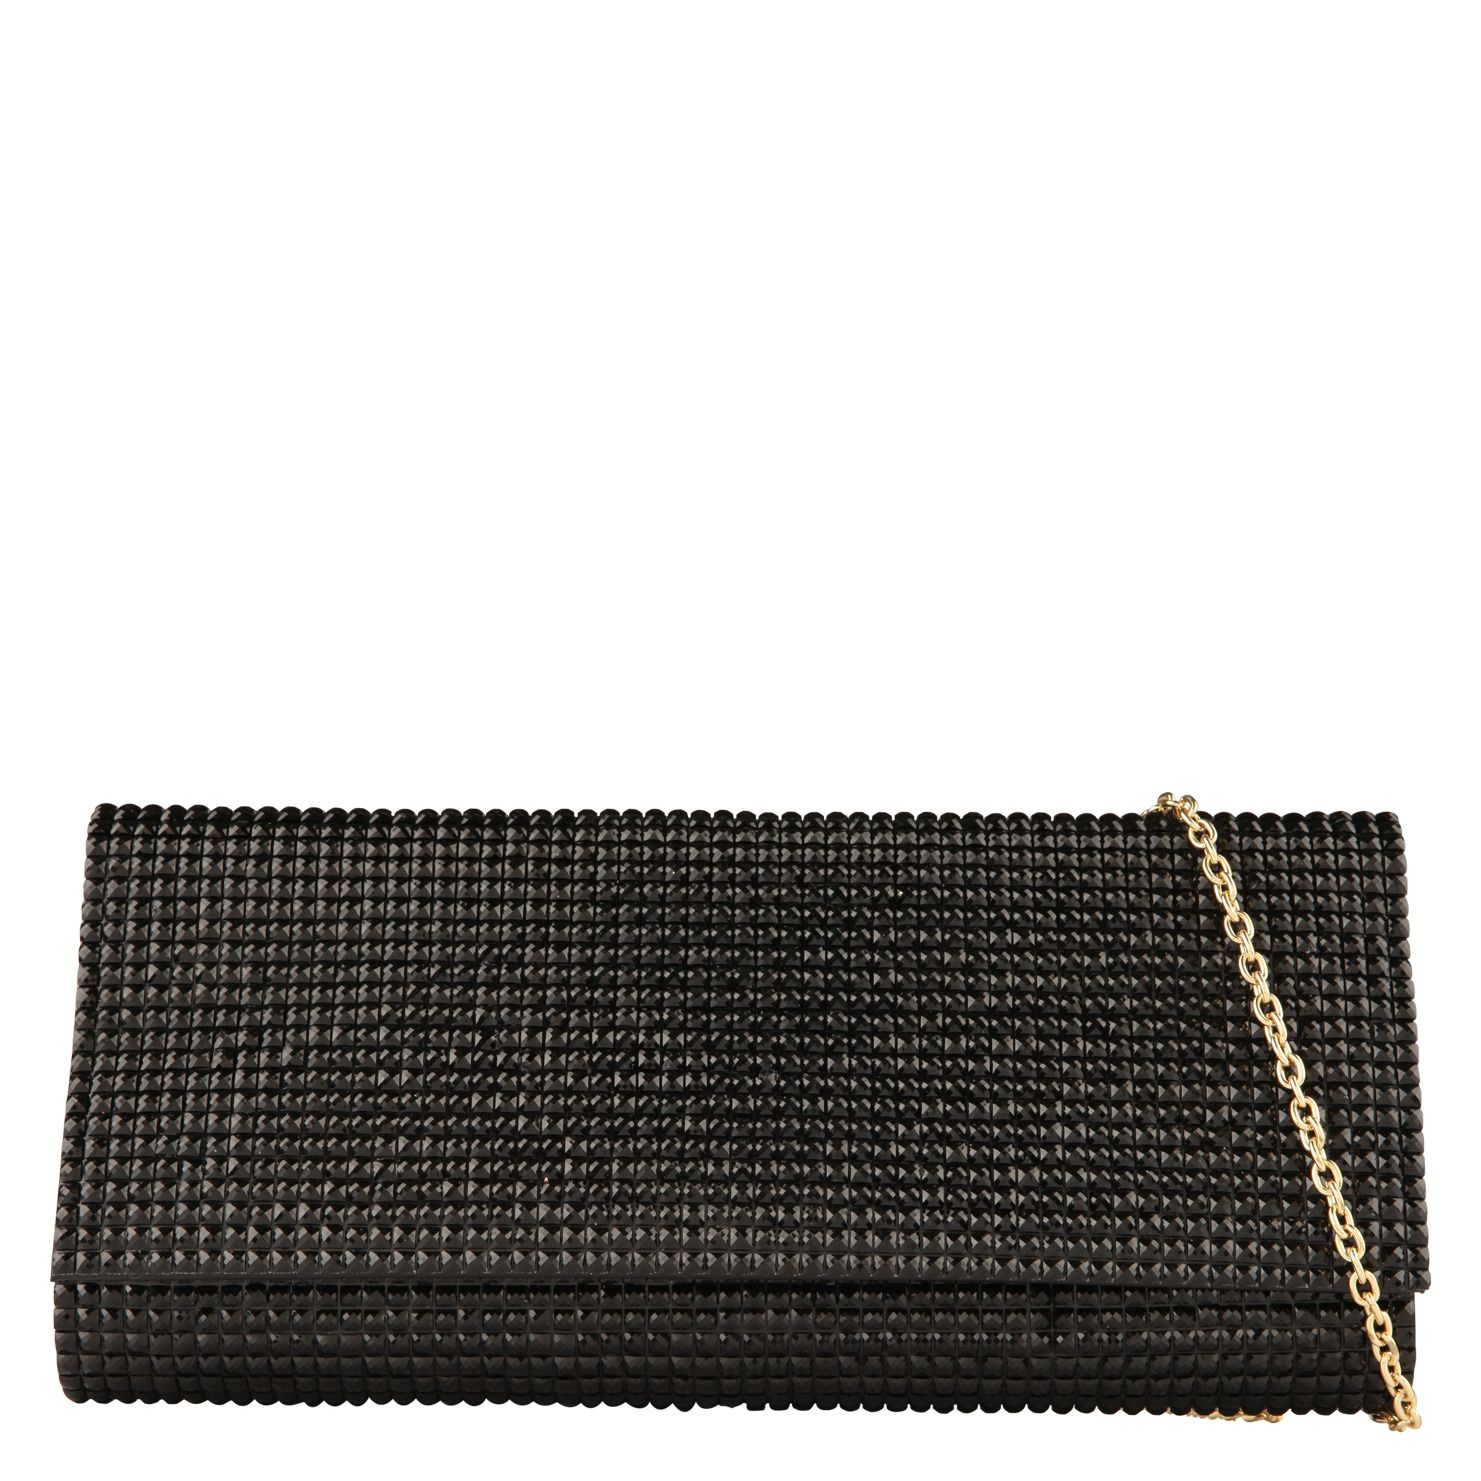 evening bags for sale at ALDO Shoes